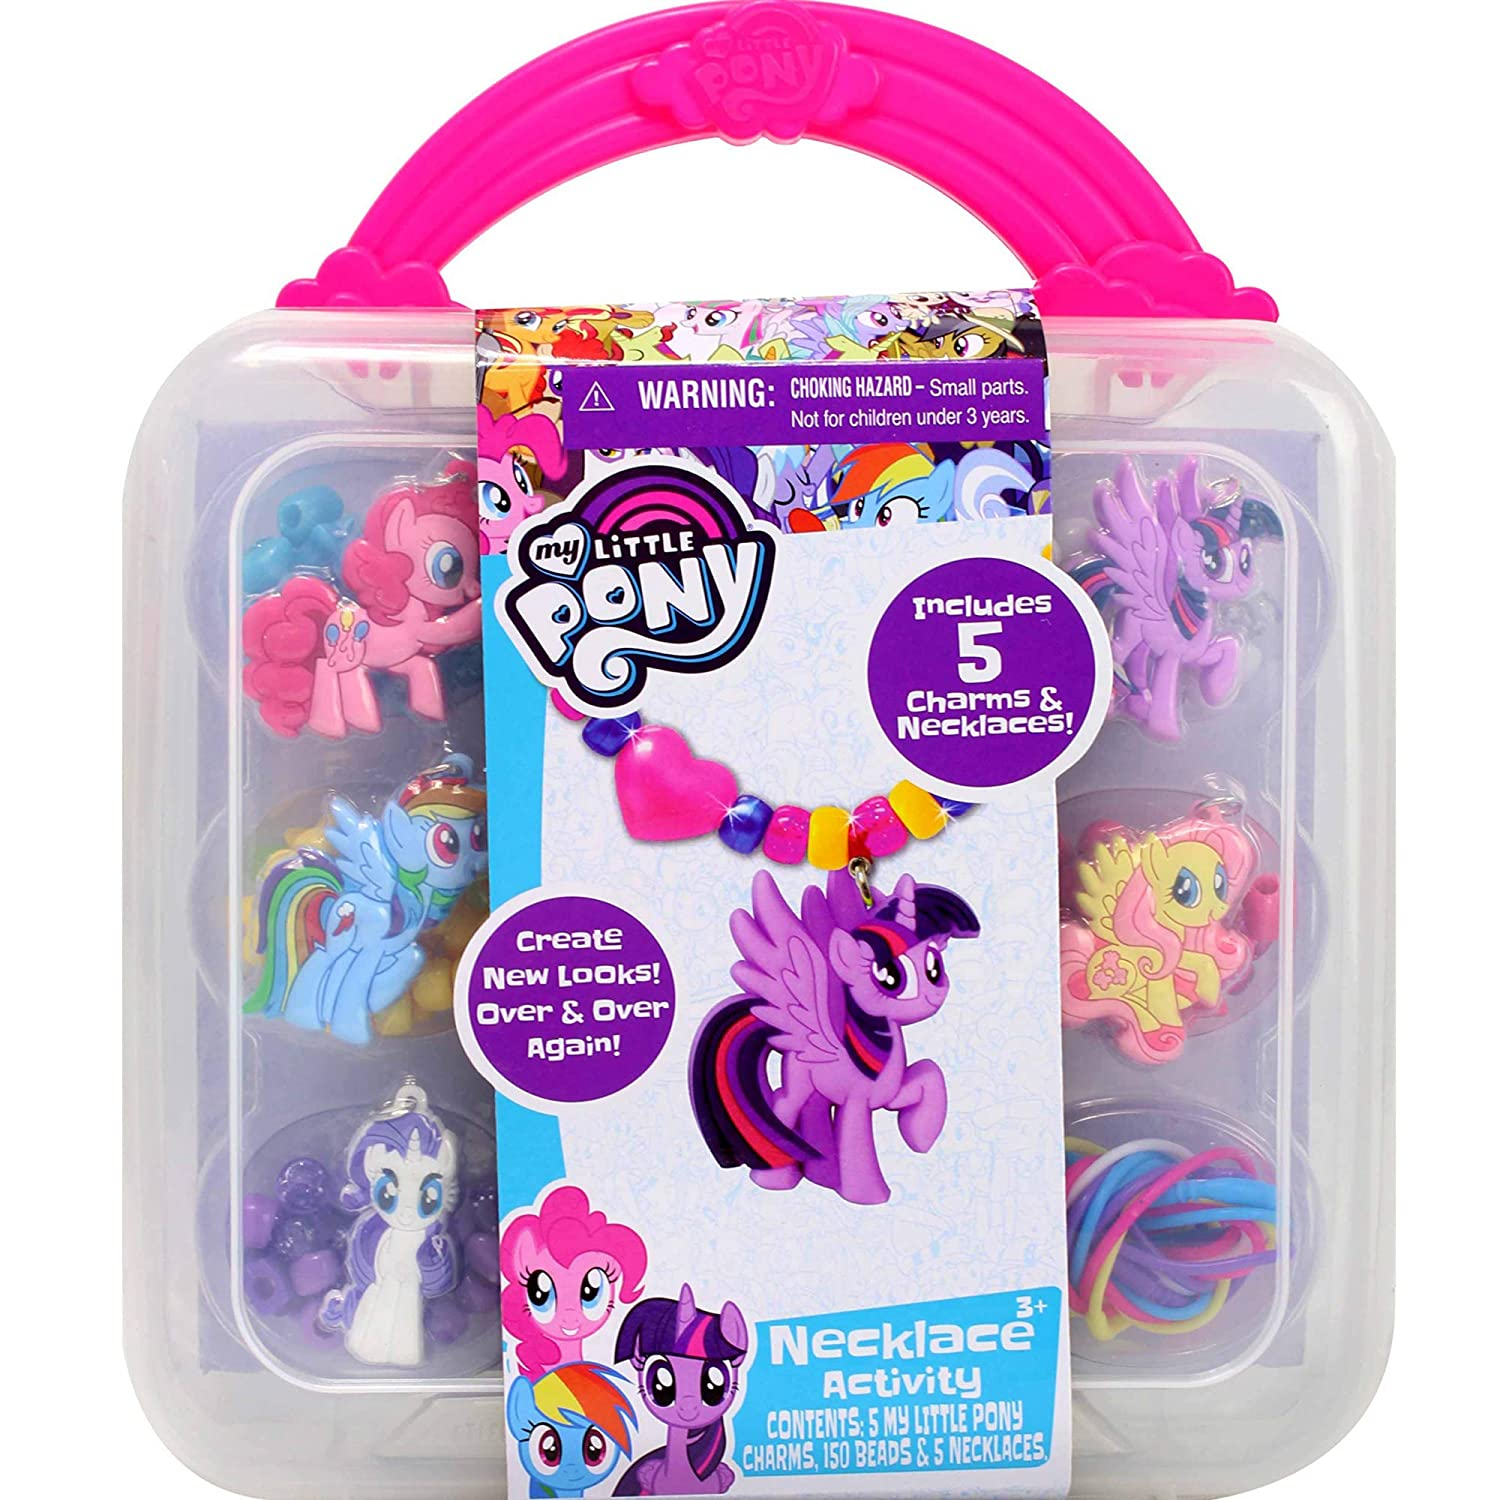 Top 11 Best My Little Pony Toys Reviews in 2020 4